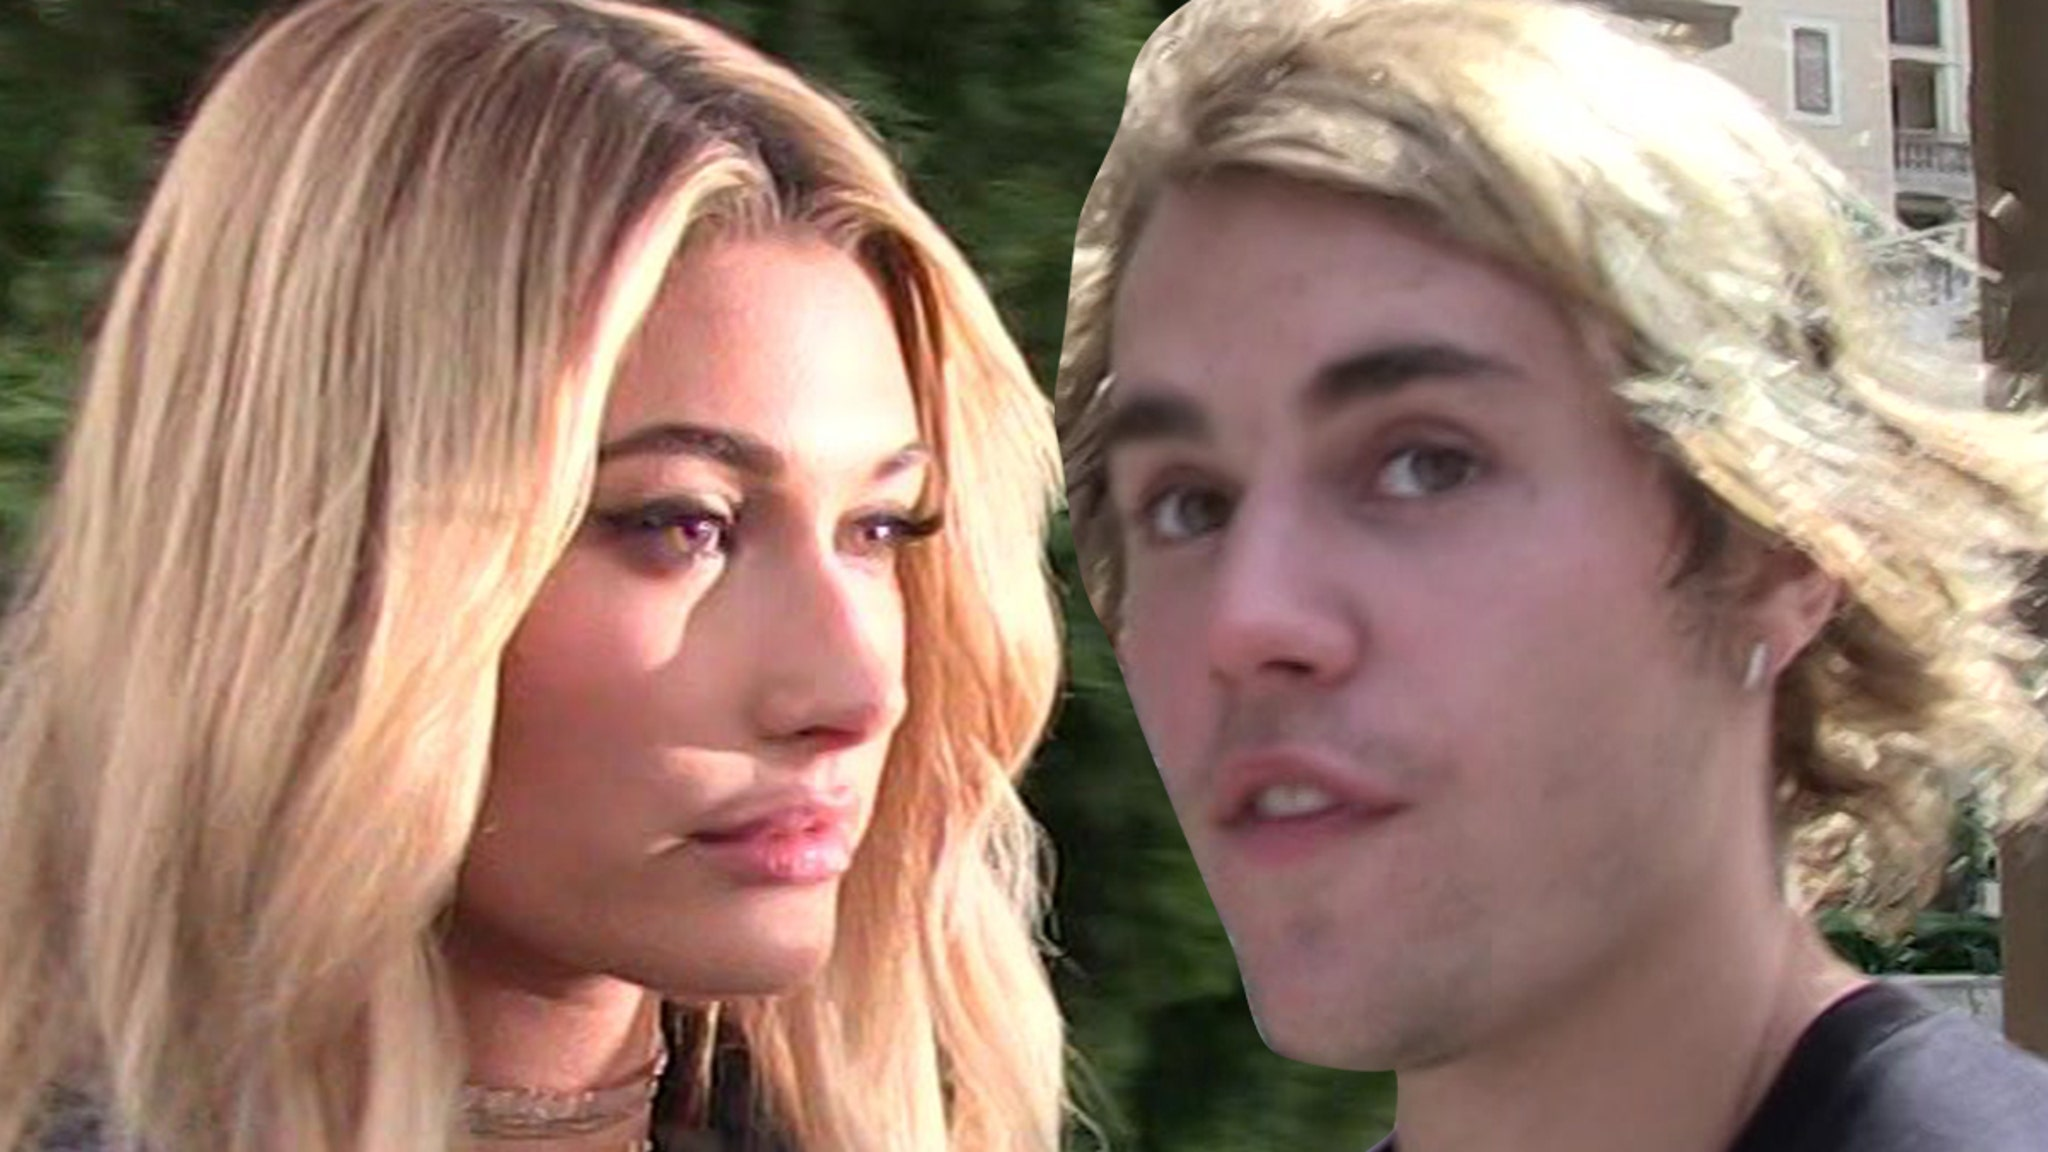 Hailey and Justin Bieber Threaten to Sue Plastic Surgeon Over TikTok Claims - TMZ